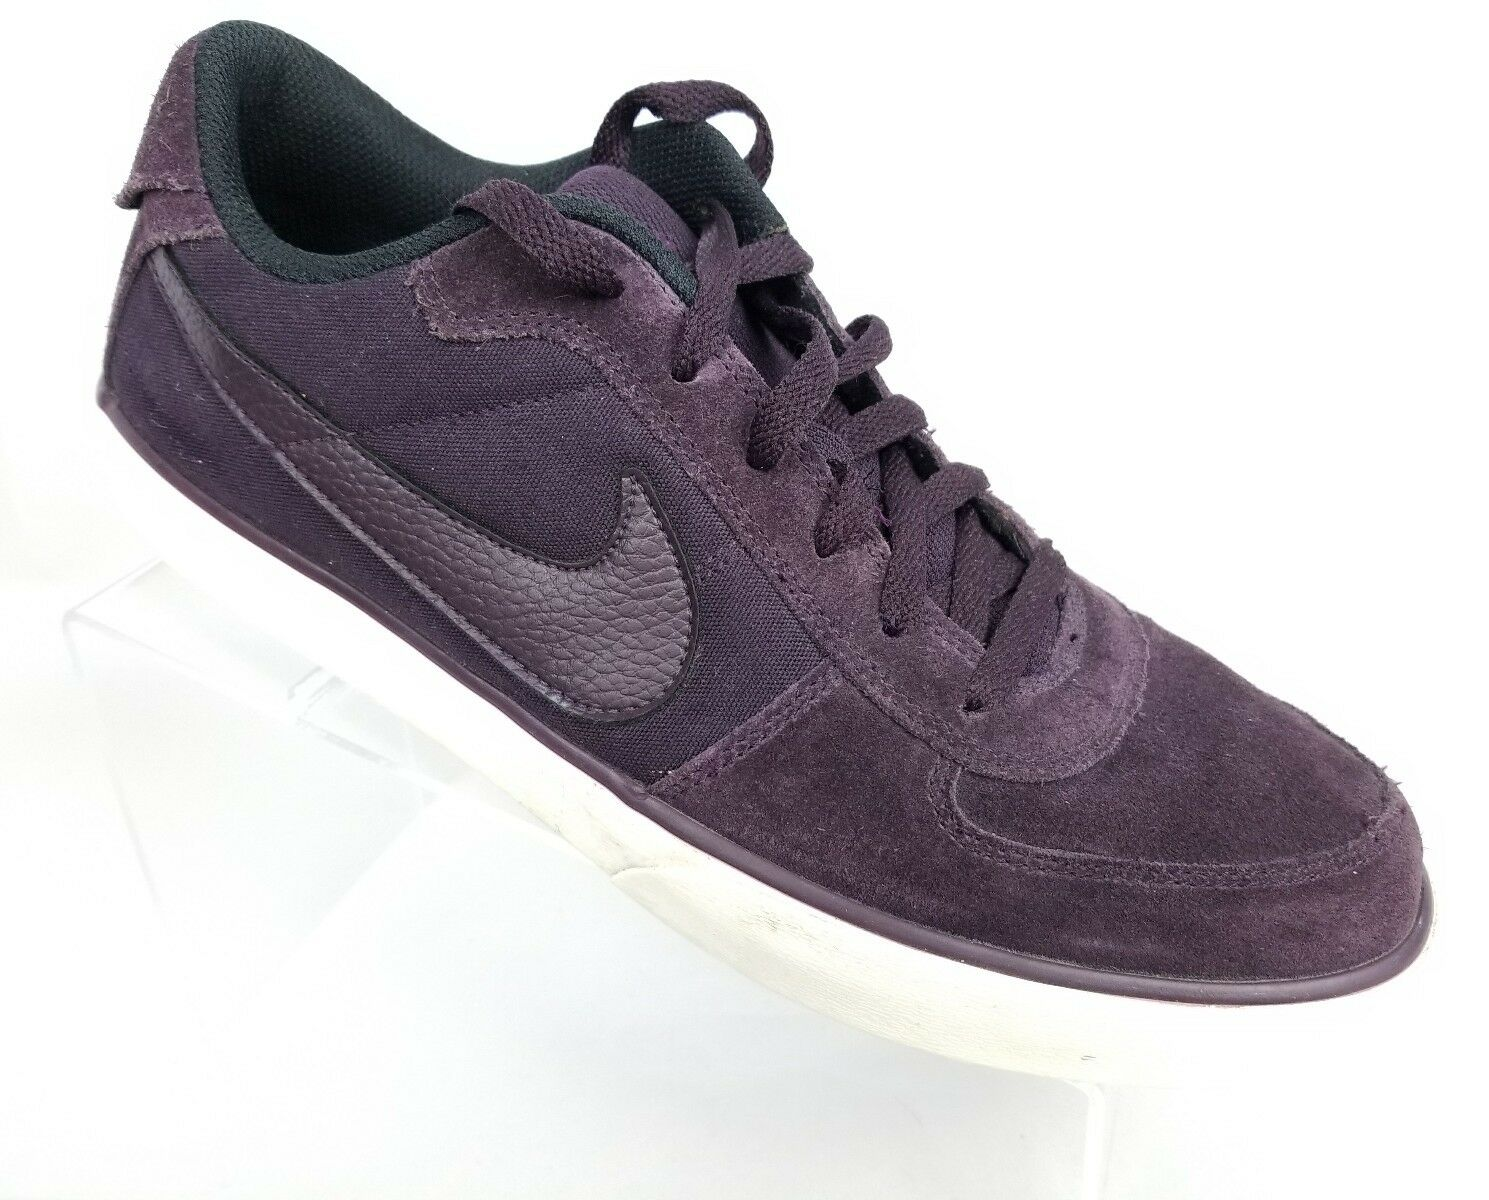 Nike Mavrk Low Mens 11.5 Purple Suede Leather Casual Skateboarding Shoes